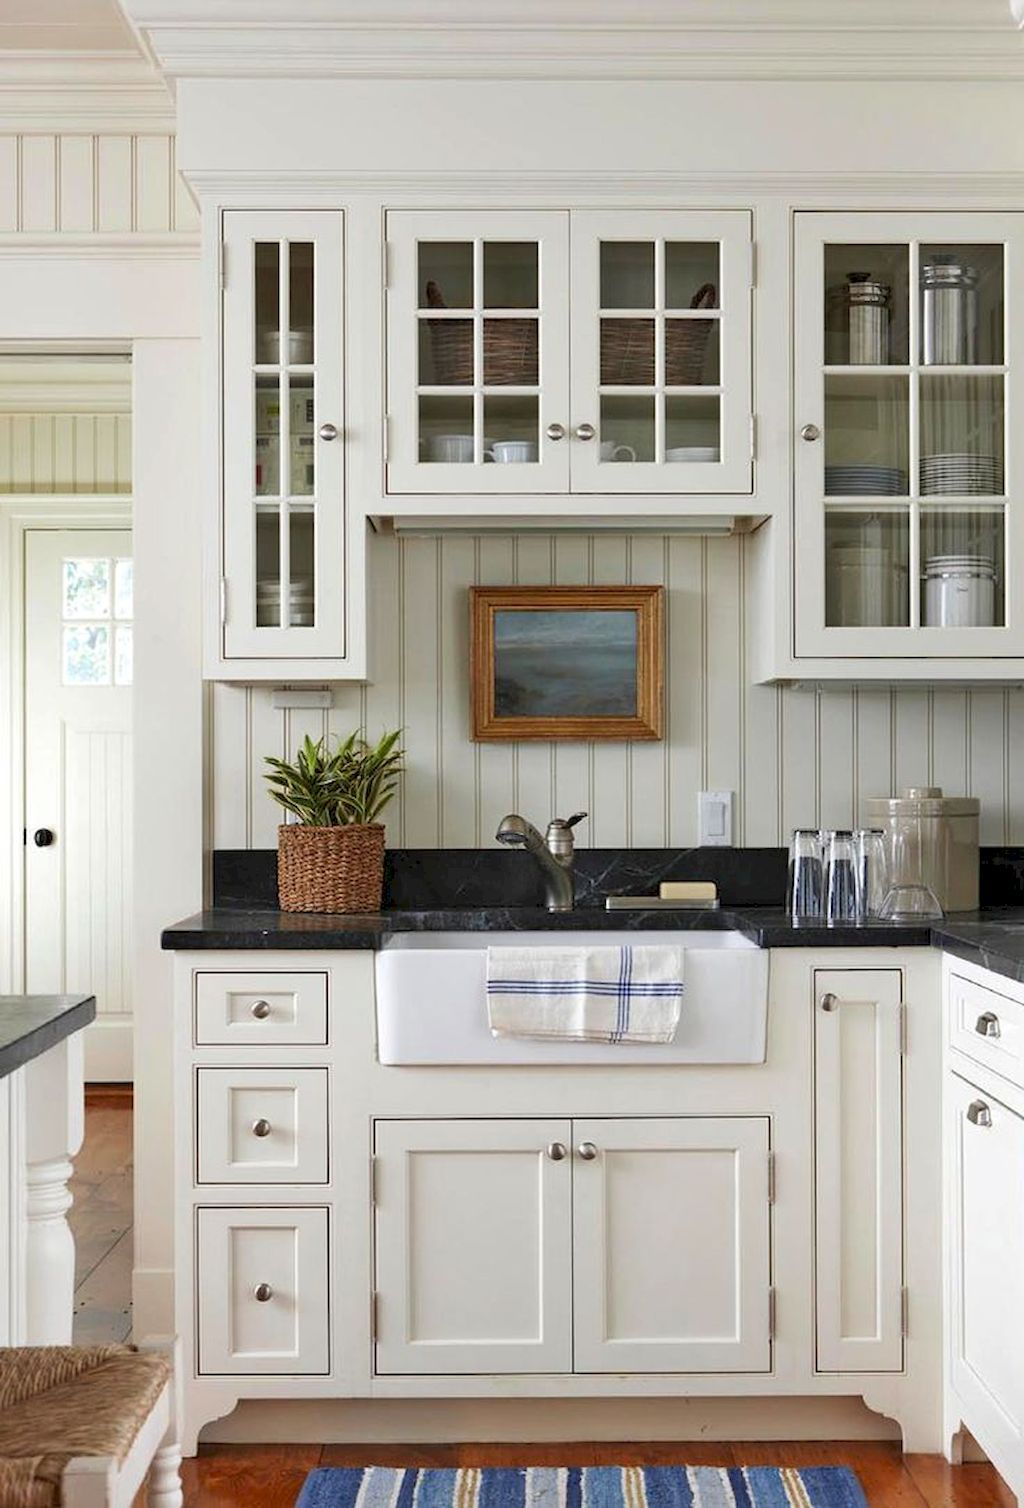 Awesome 60 White Kitchen Cabinet Decor For Farmhouse Style Ideas